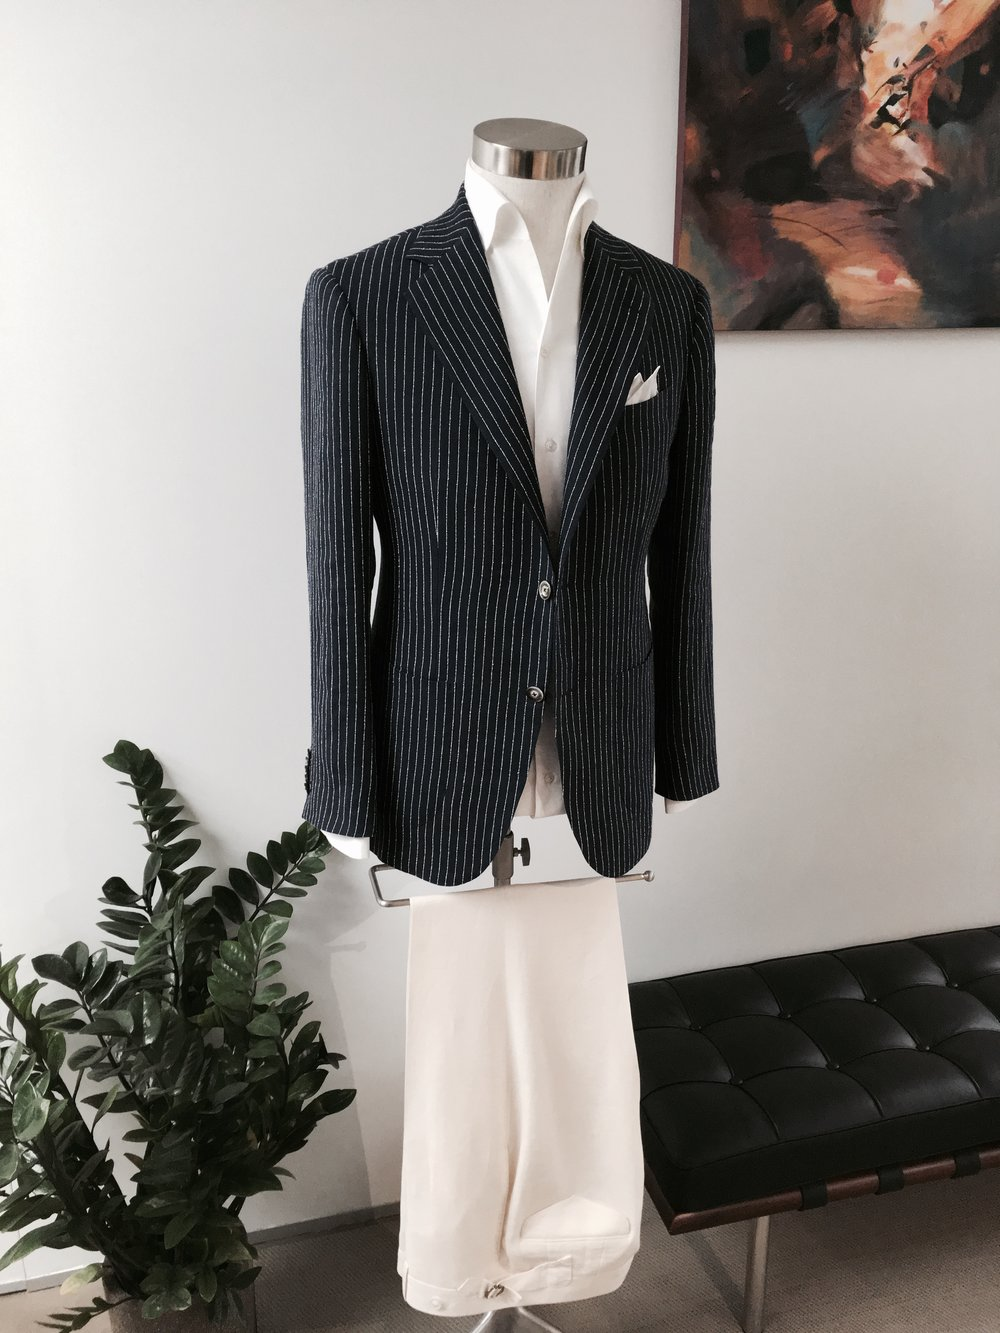 Summer Linen Leisure Wear in Pinstripe. From HK$13,800.